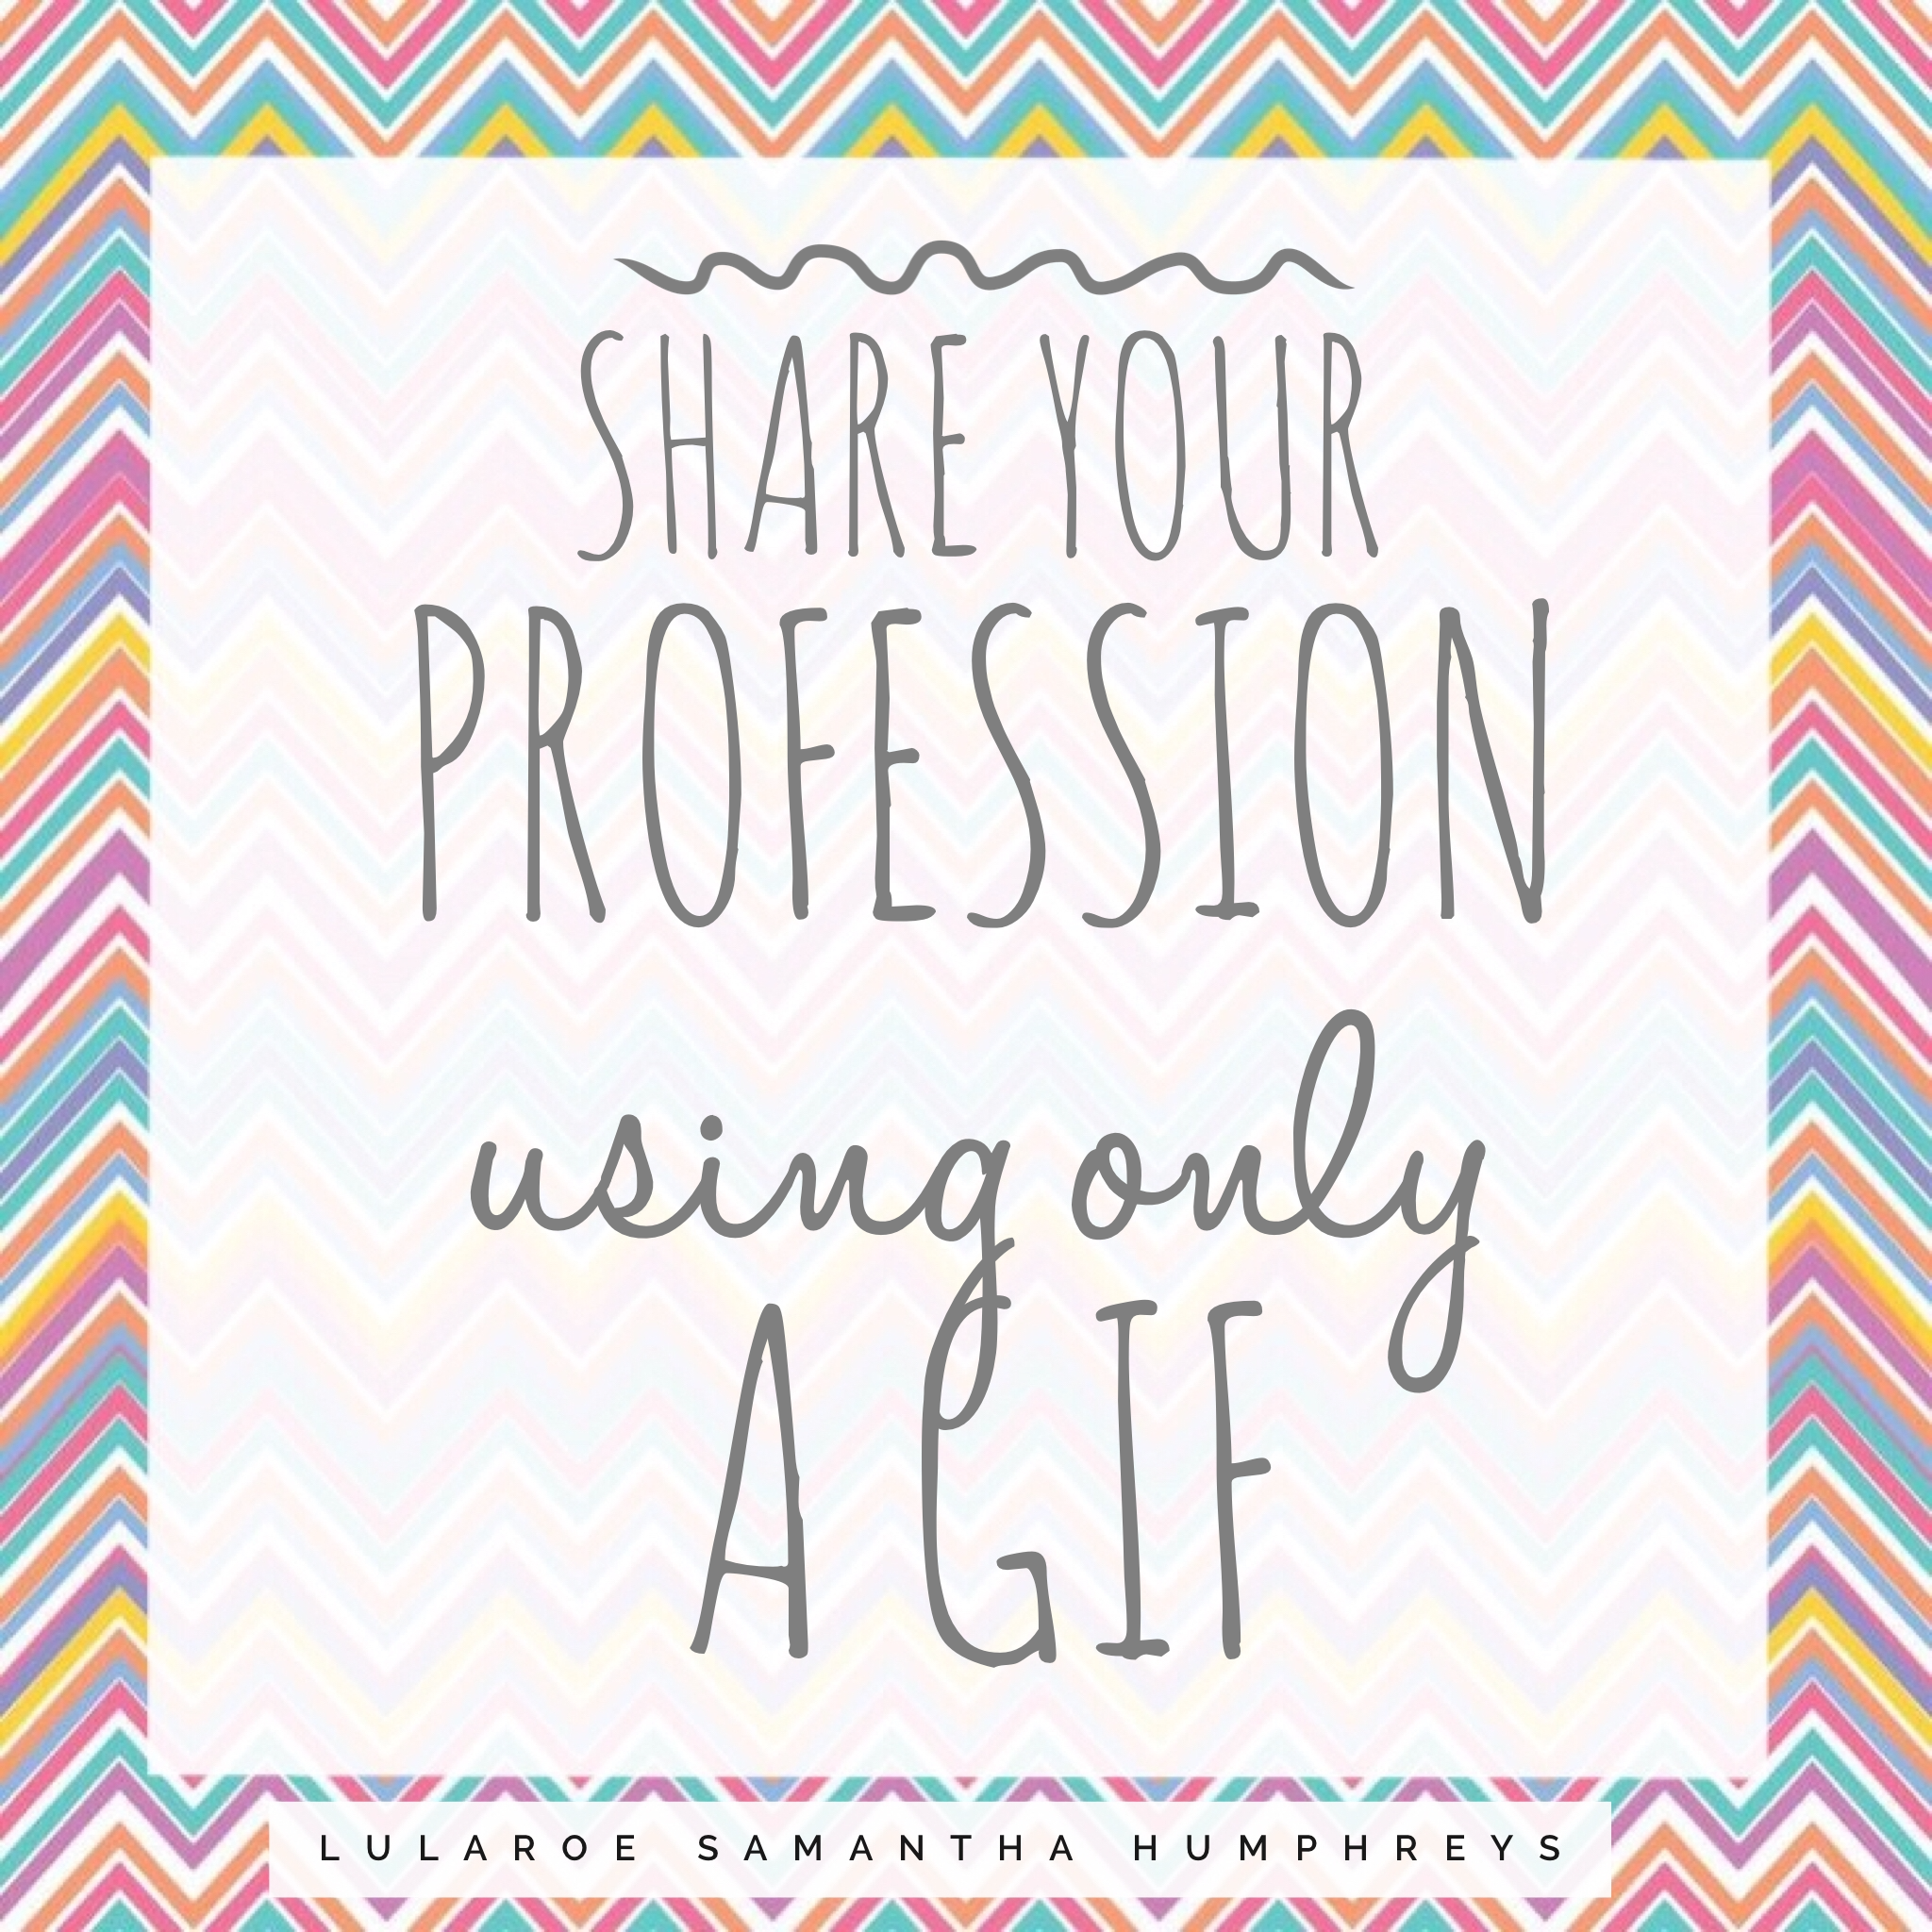 Engagement Party Games: LuLaRoe Engagement Post- Profession Using Gifs